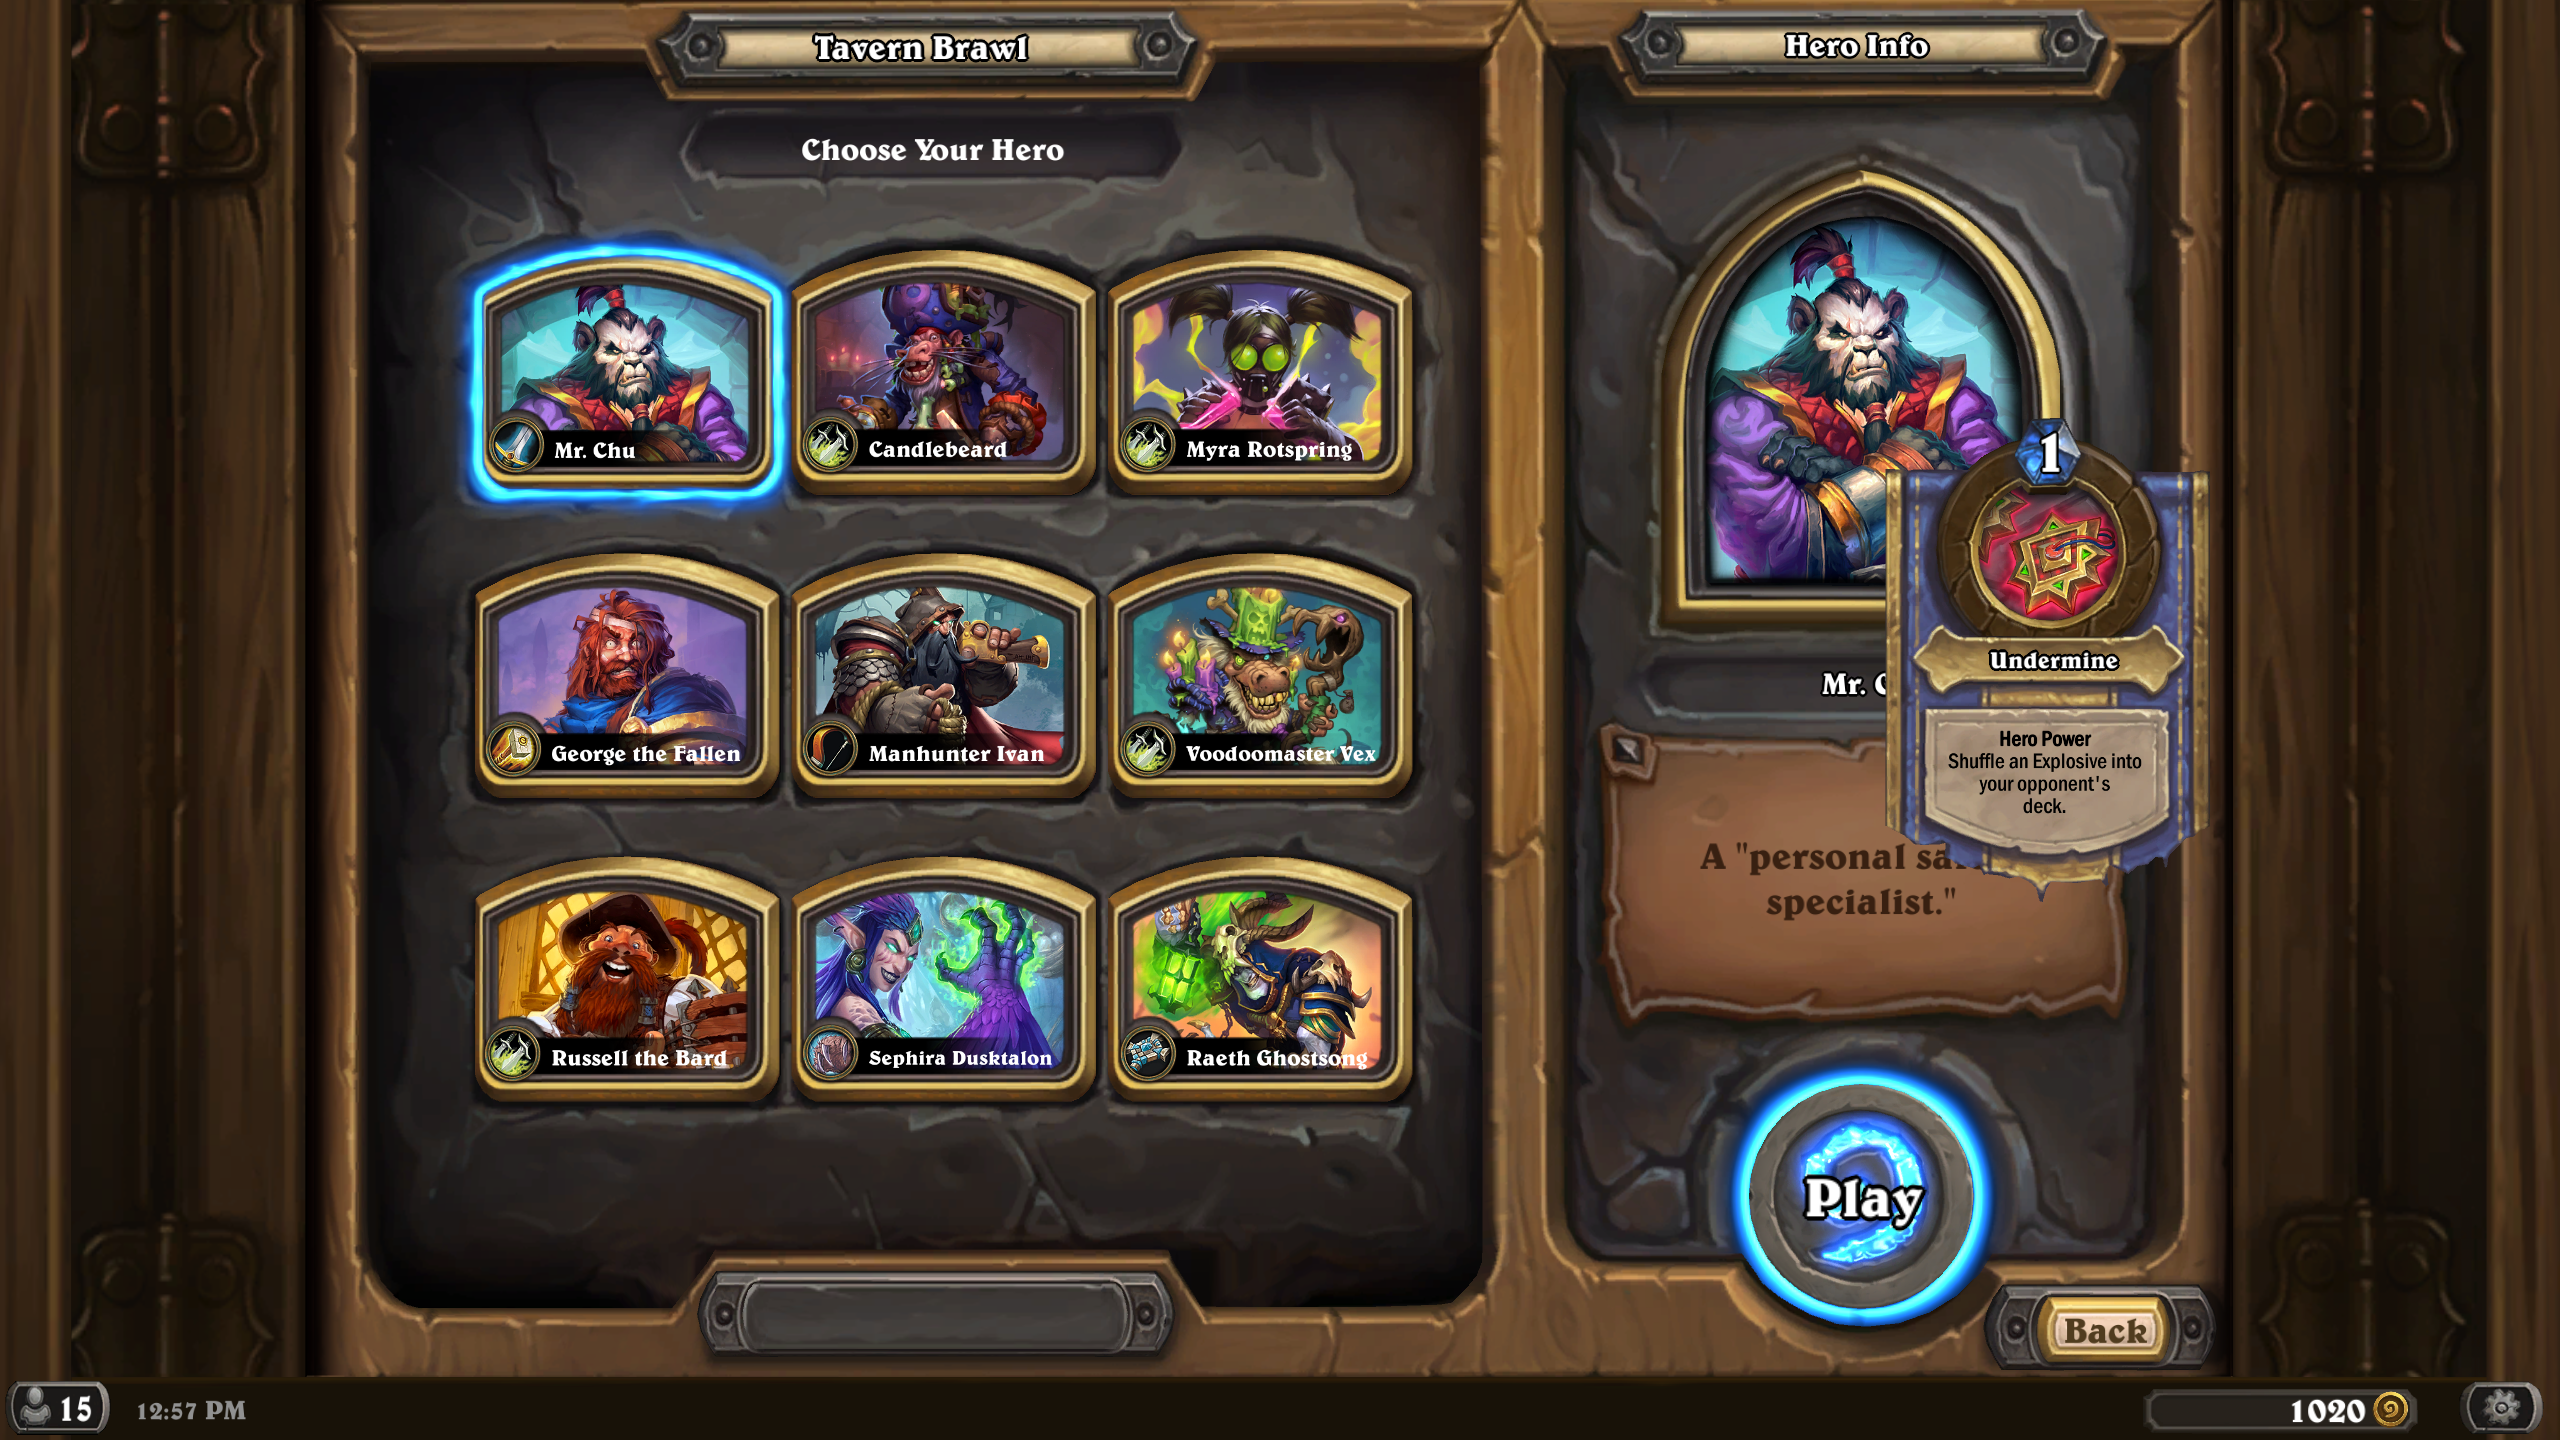 This Week's Brawl is Henchmania! Rise of Shadows Pack Quest, Unique